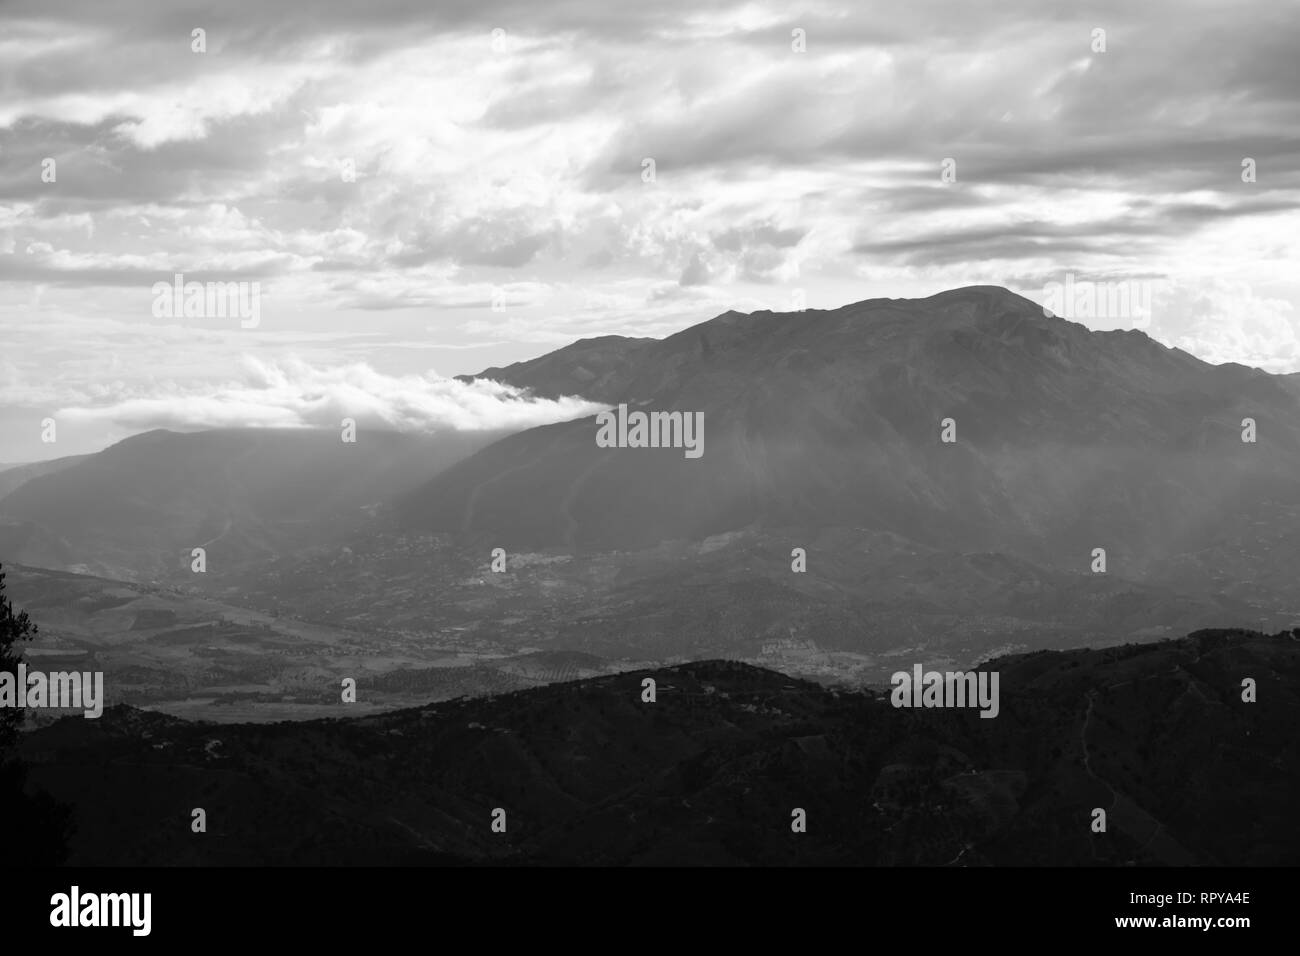 Black and White fine art landscape images of the Axarquia Region of Andalucia, Malaga, Spain - Stock Image